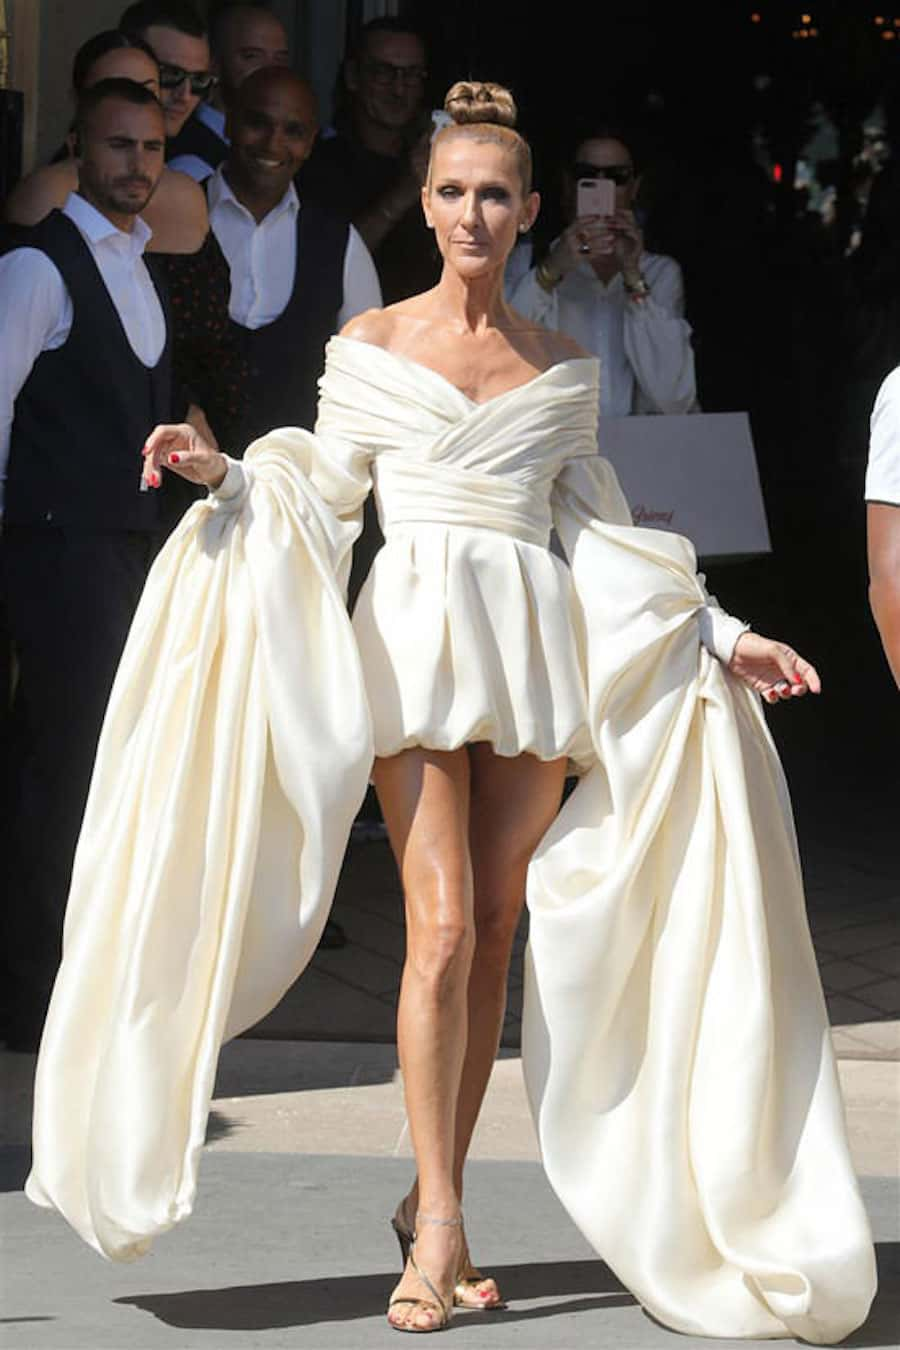 Celine Dion Weight Loss and Eating Disorder Update